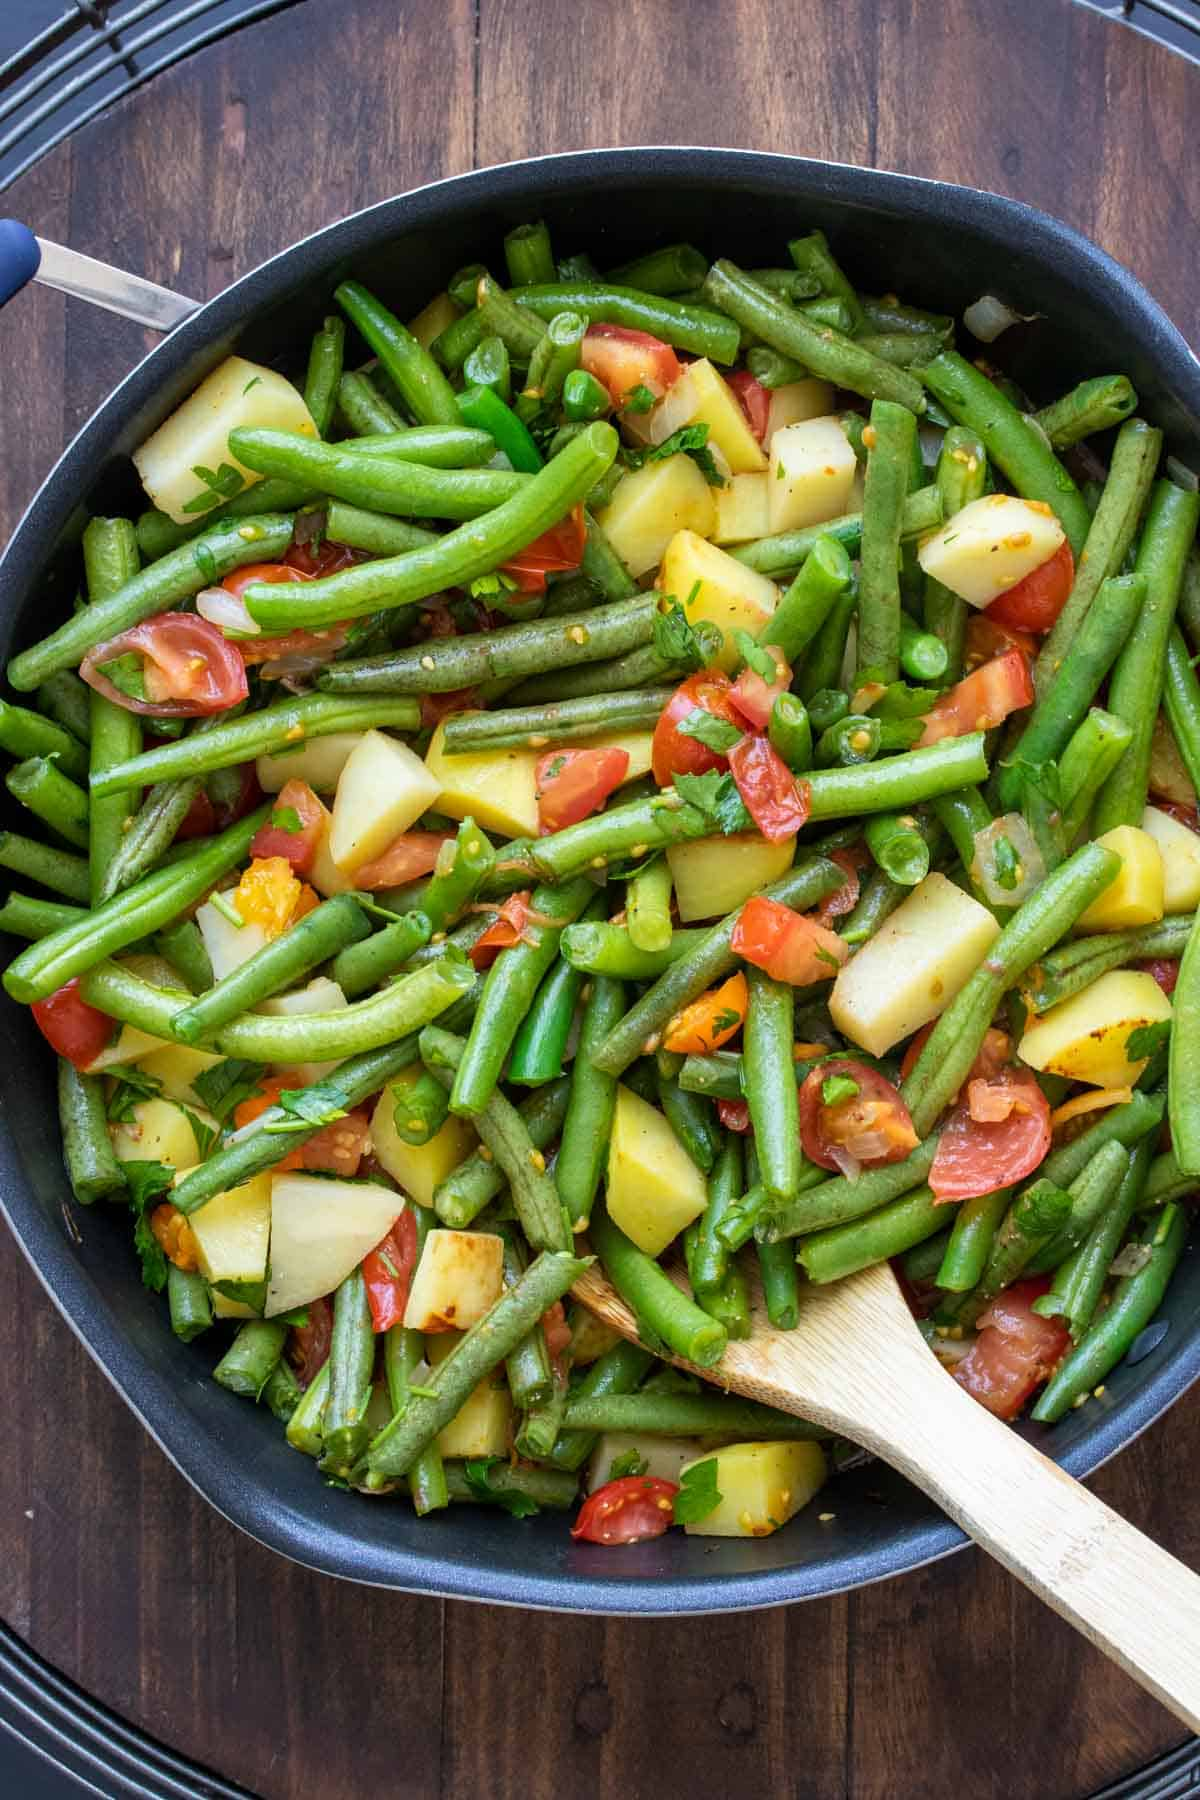 Wooden spoon stirring green beans, potatoes and tomatoes in a pan